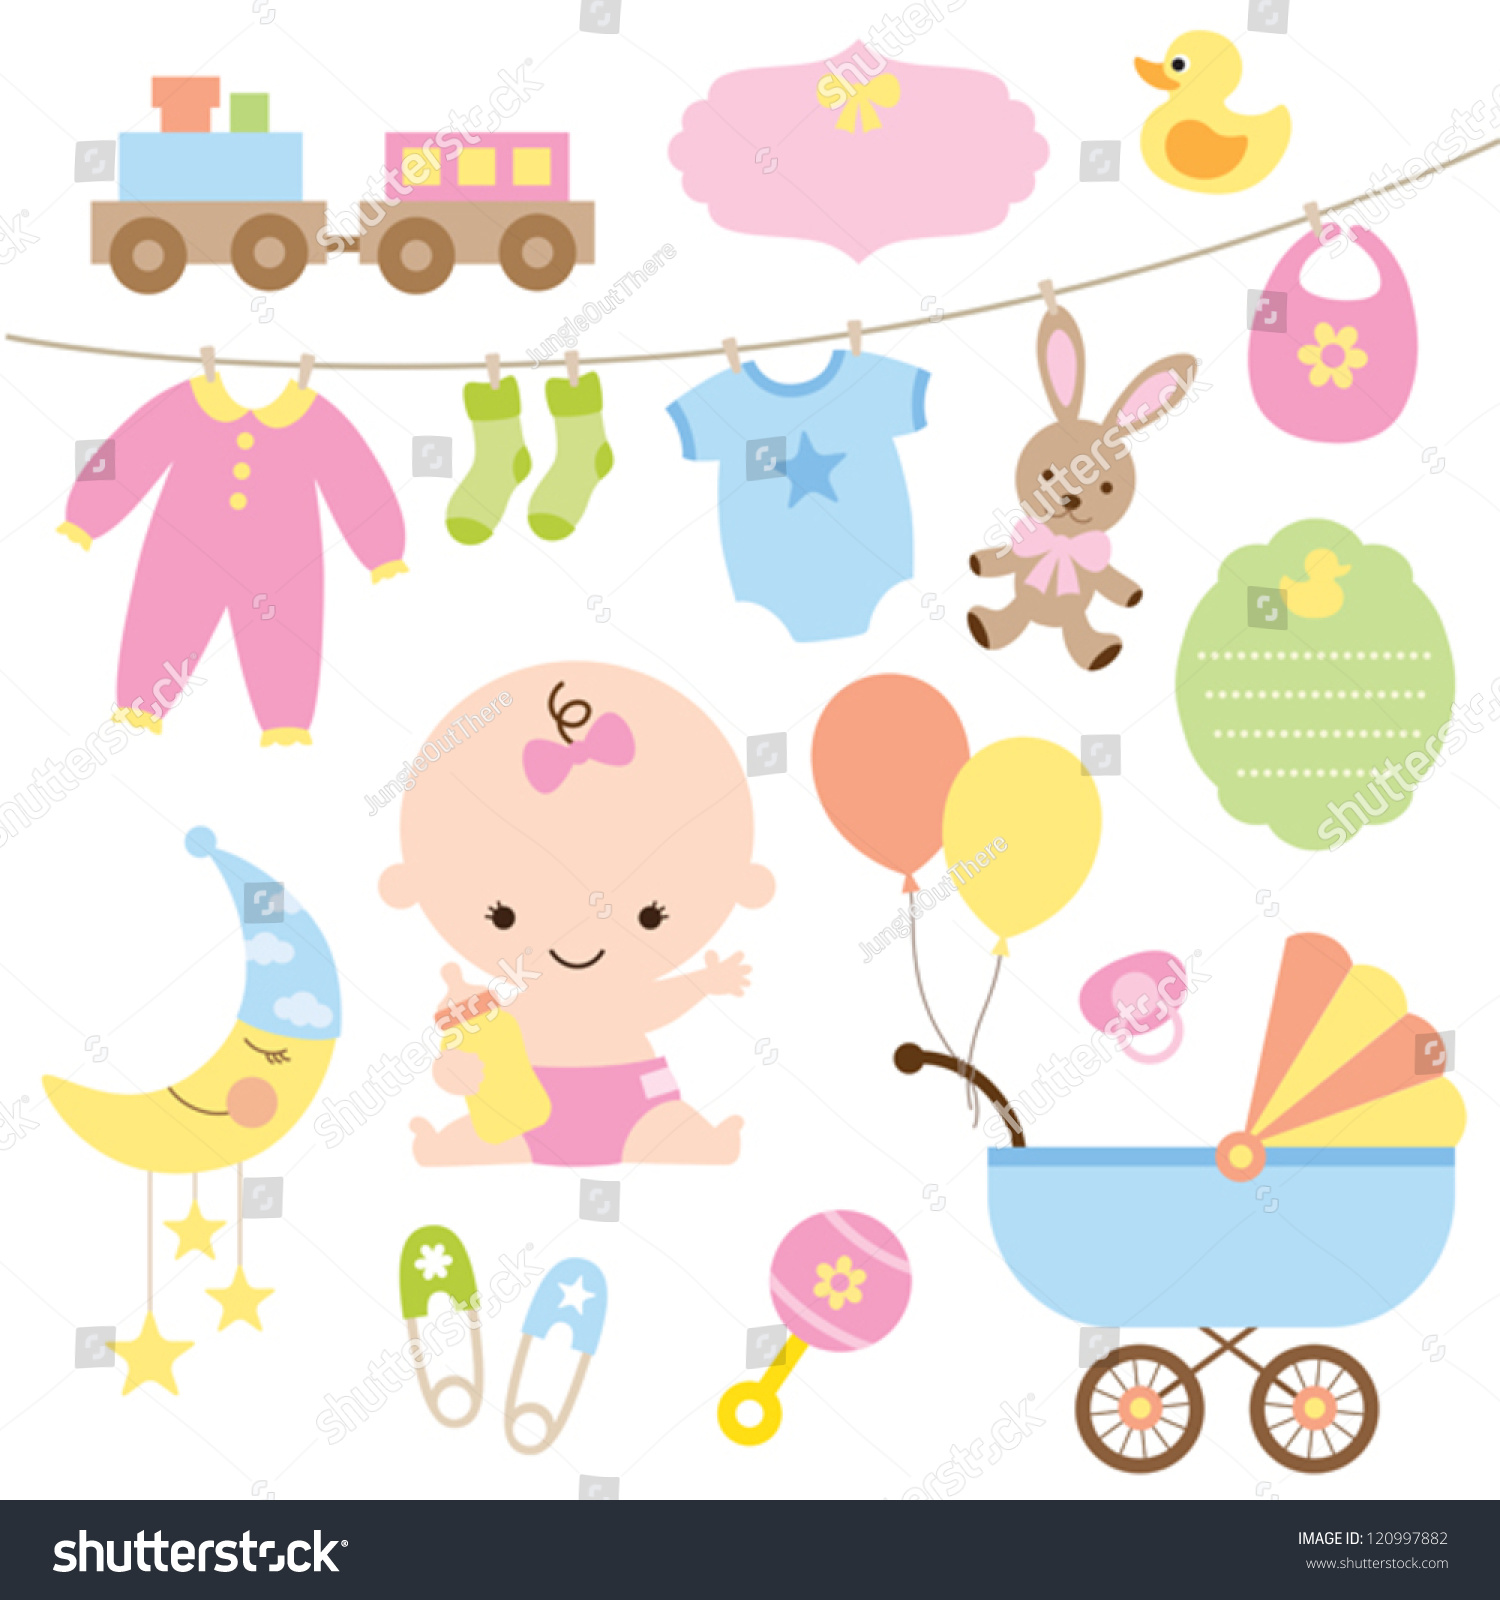 Vector Illustration Baby Related Items Stock Vector ...